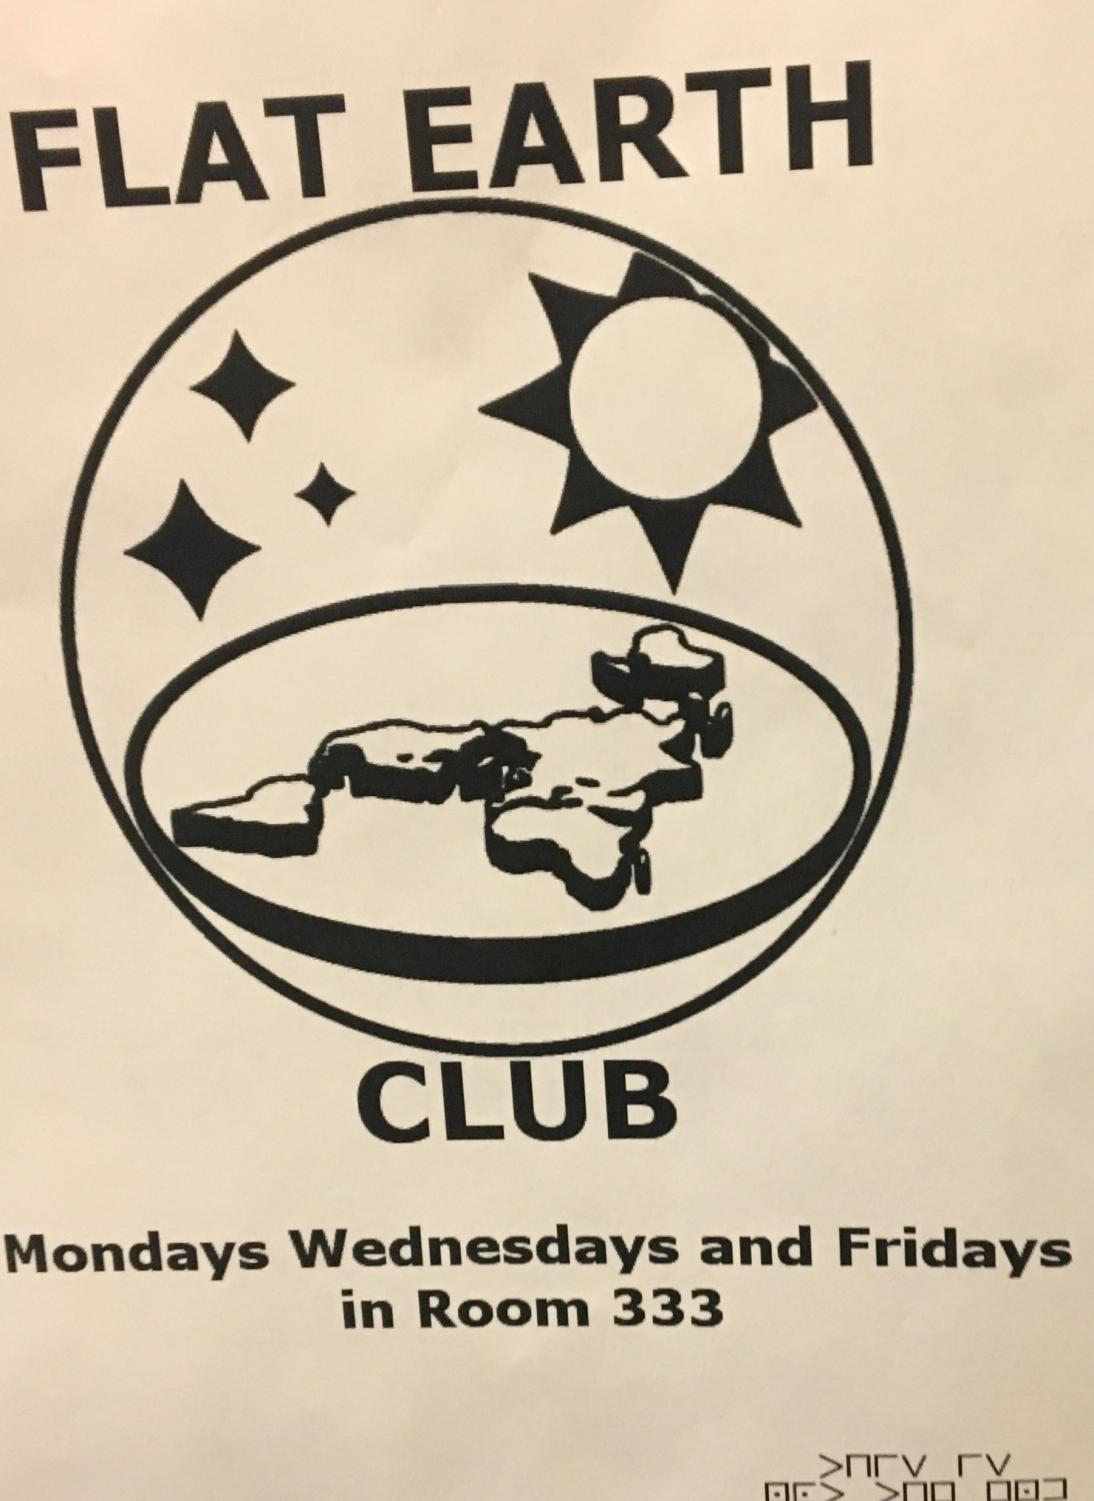 Photo of a Flat Earth Club sign that could be seen around Scituate High School. Photo courtesy of Max Bates